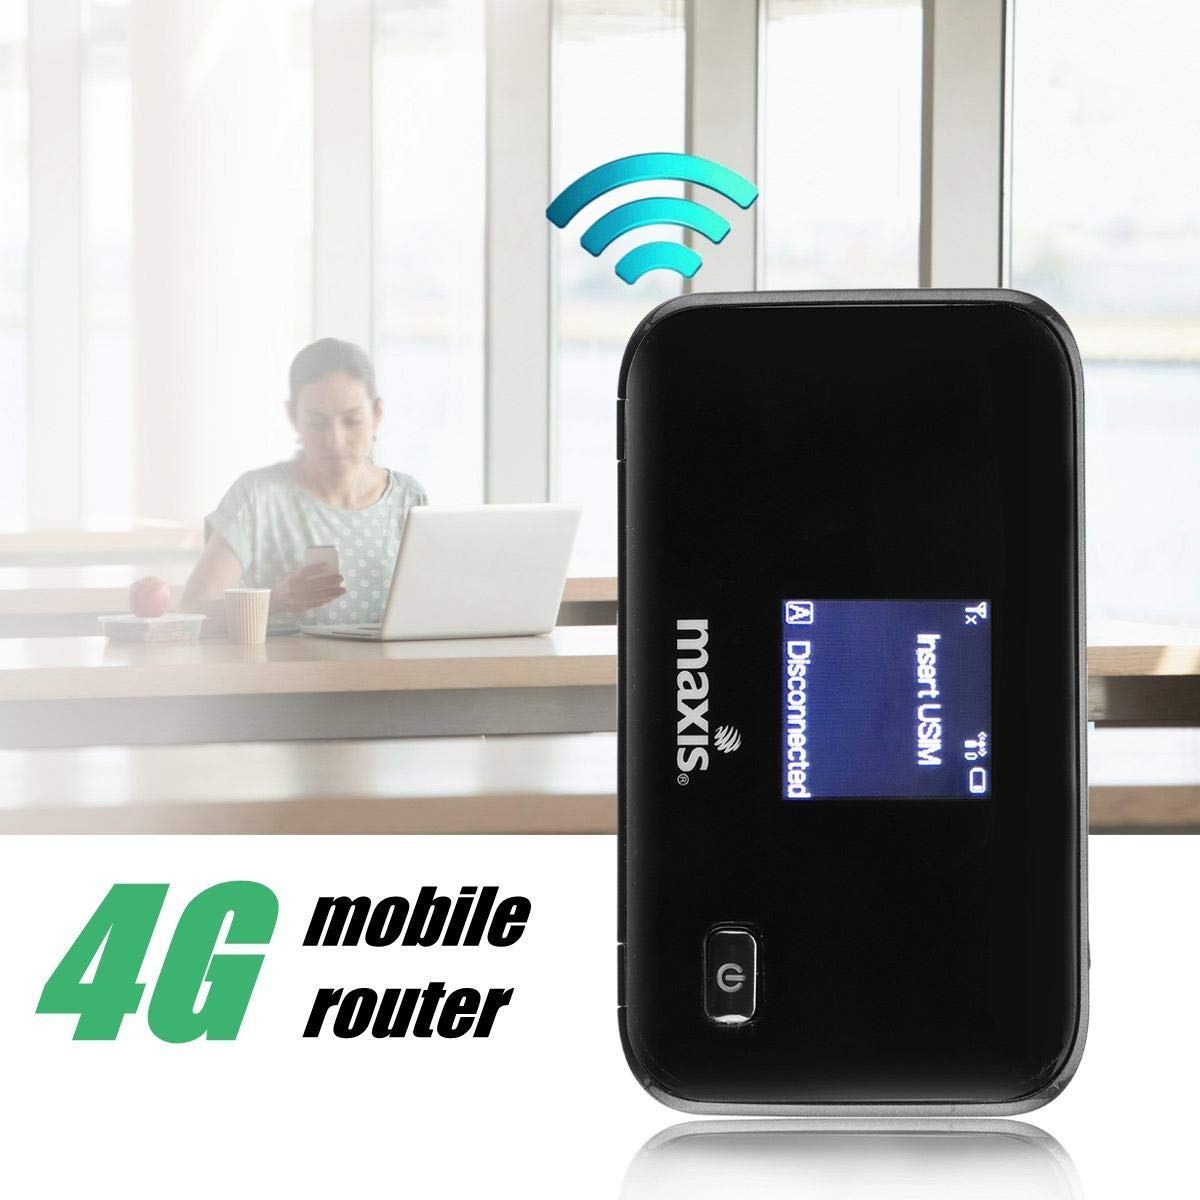 3G 4G LTE Routers Portable Wireless Mobile Hotspot Router SIM TF Card Slot for Cellphone by Beizuu (Image #2)